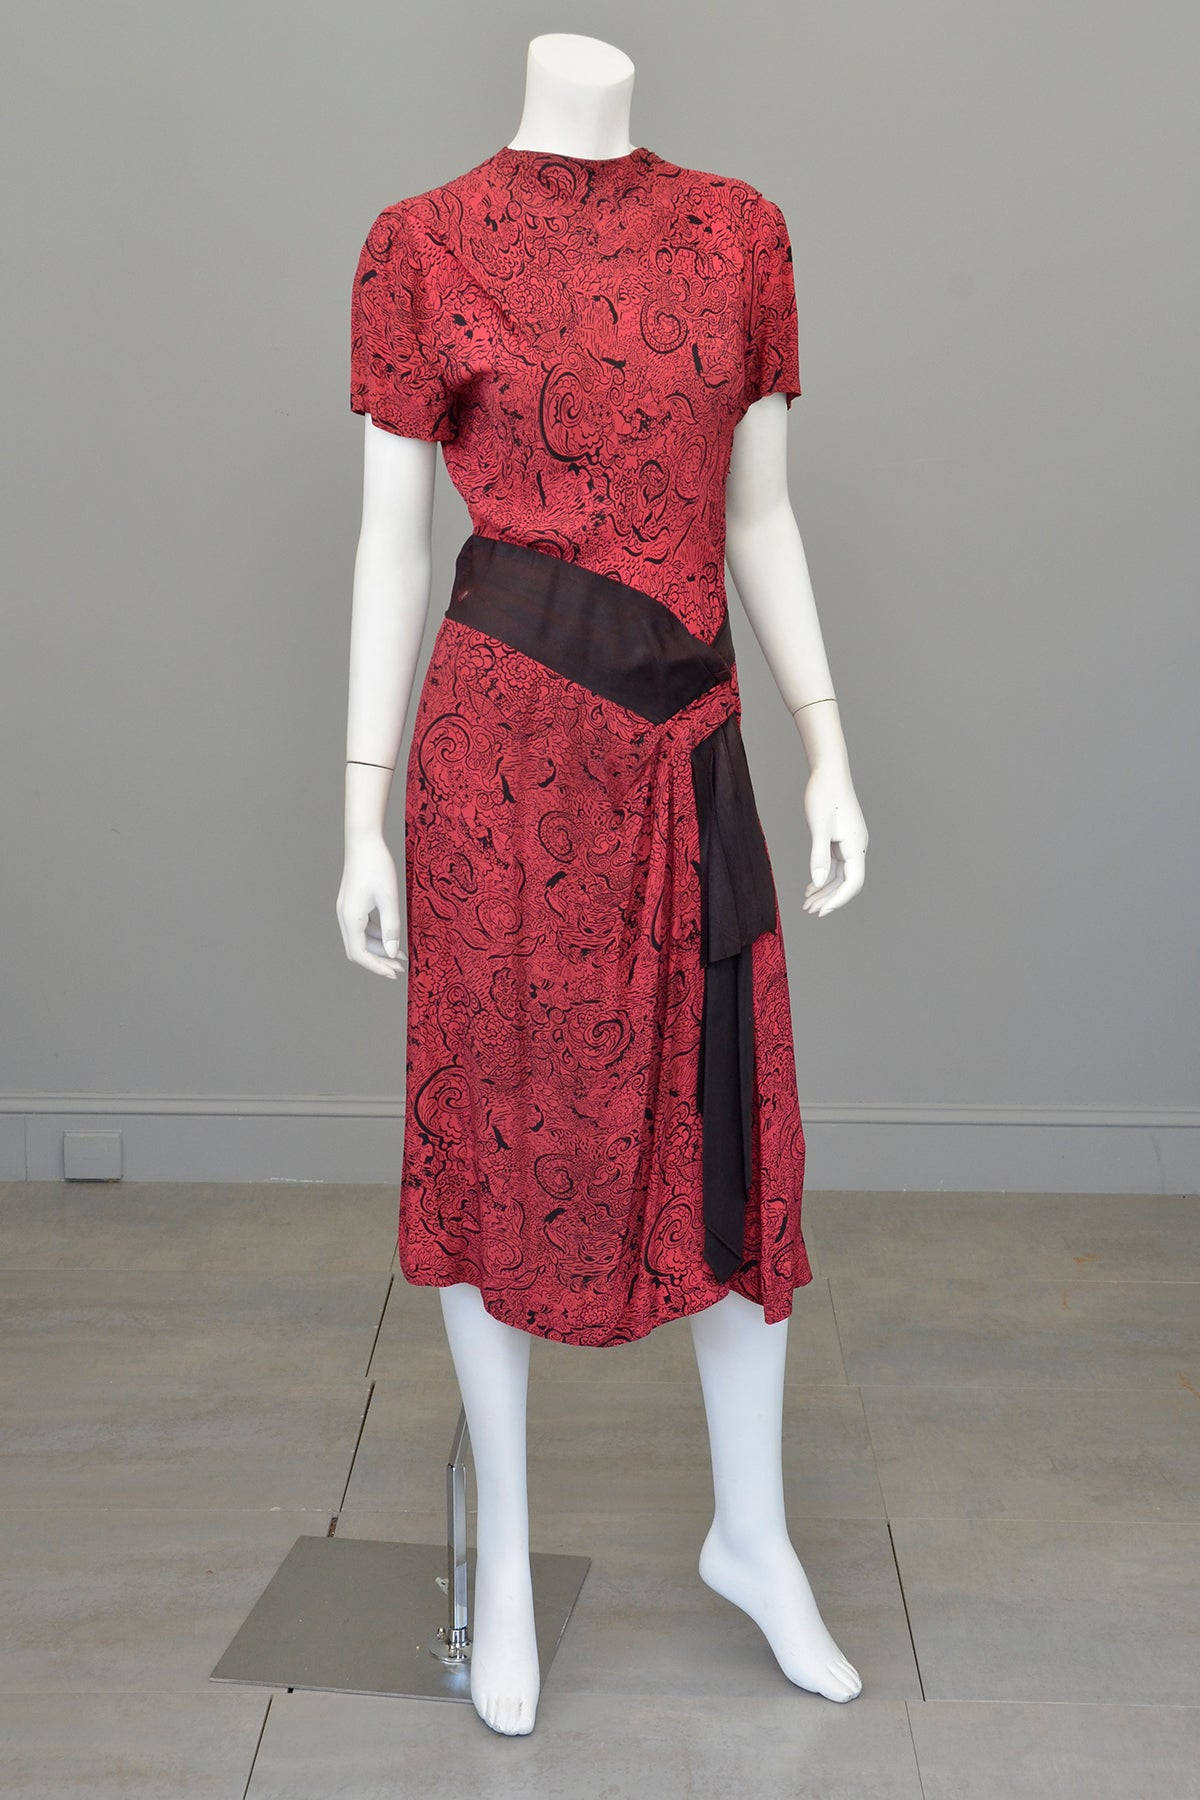 1940s Novelty Print Egyptian Revival Dress Red Black TLC